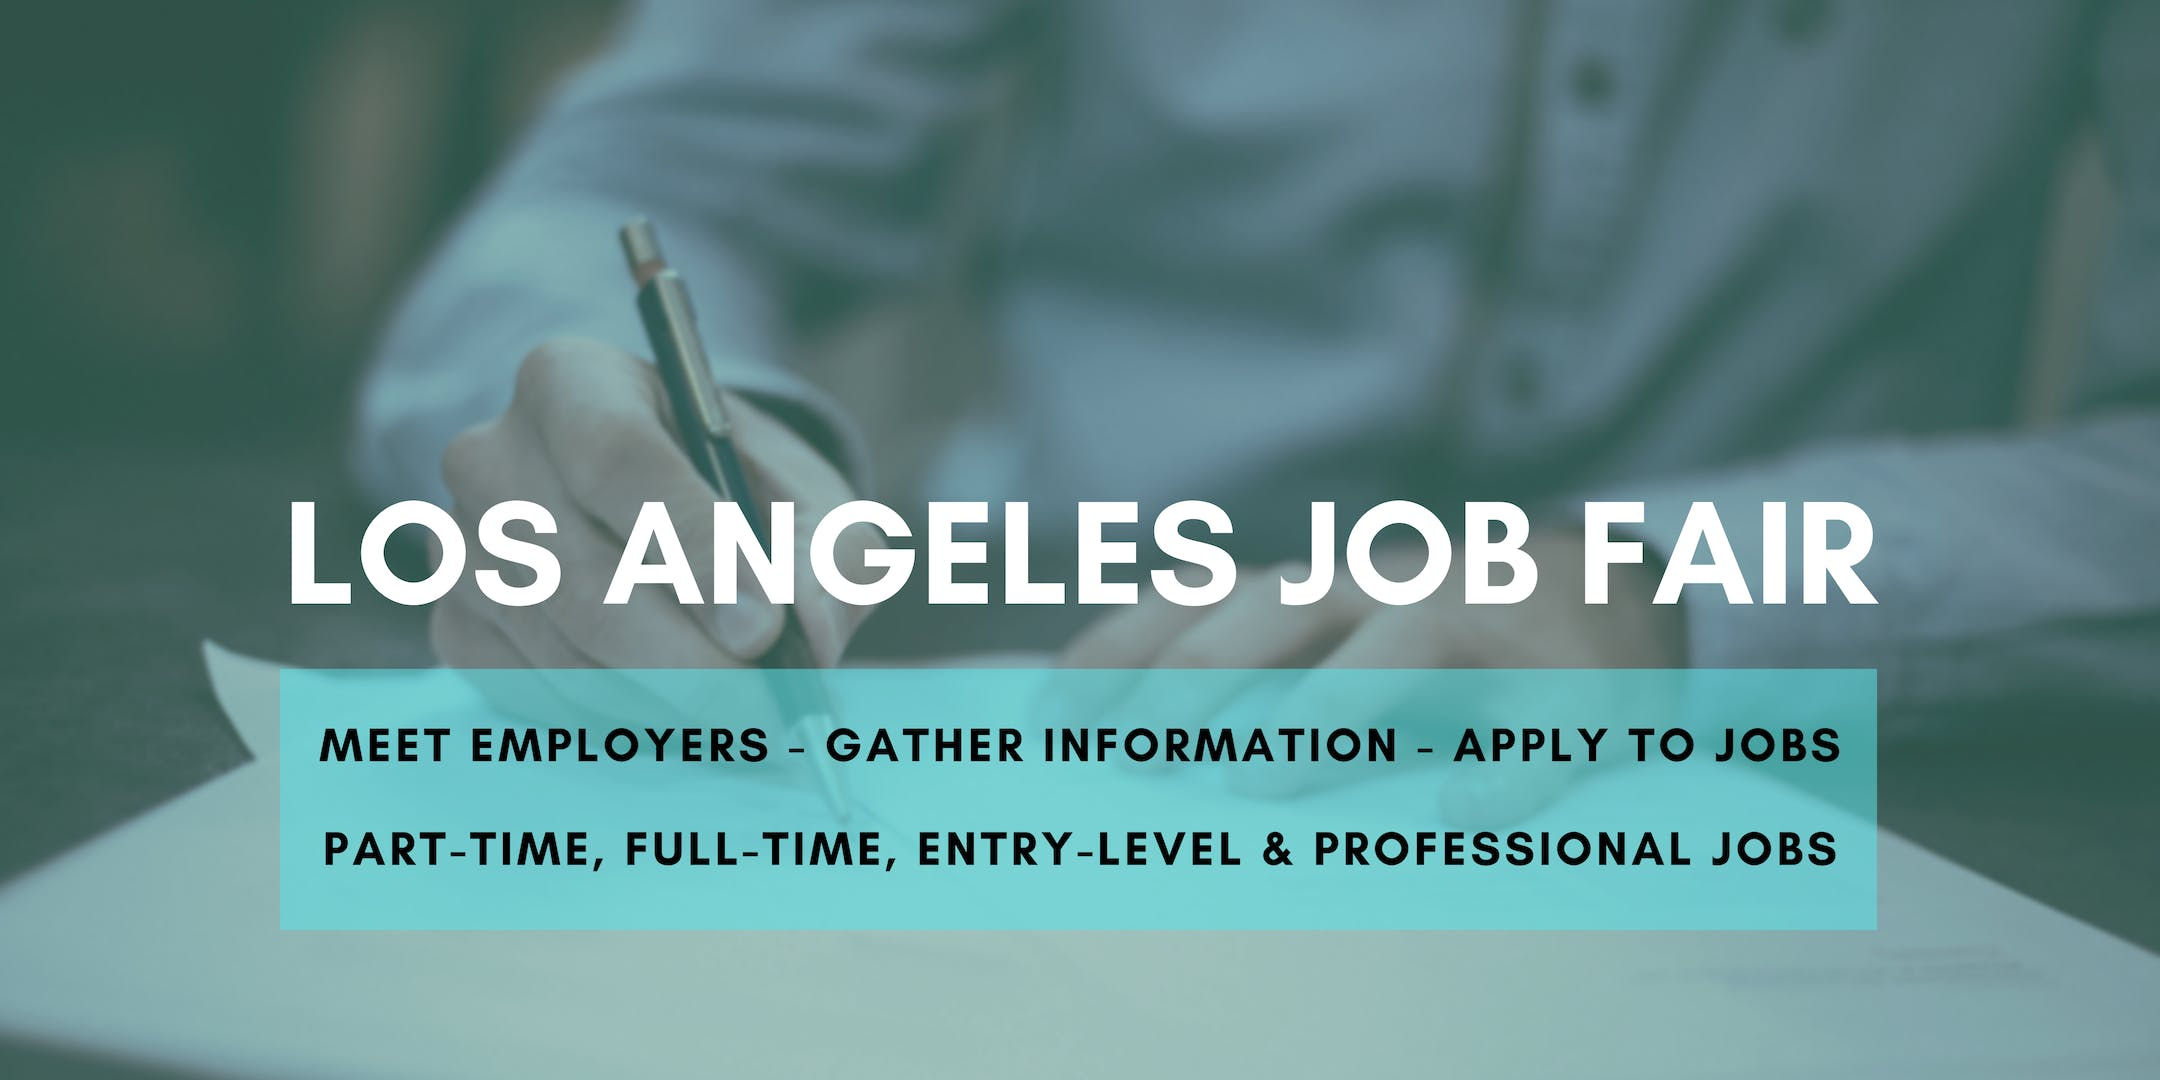 Los Angeles Job Fair - July 24, 2019 Job Fairs & Hiring Events in Los Angeles CA